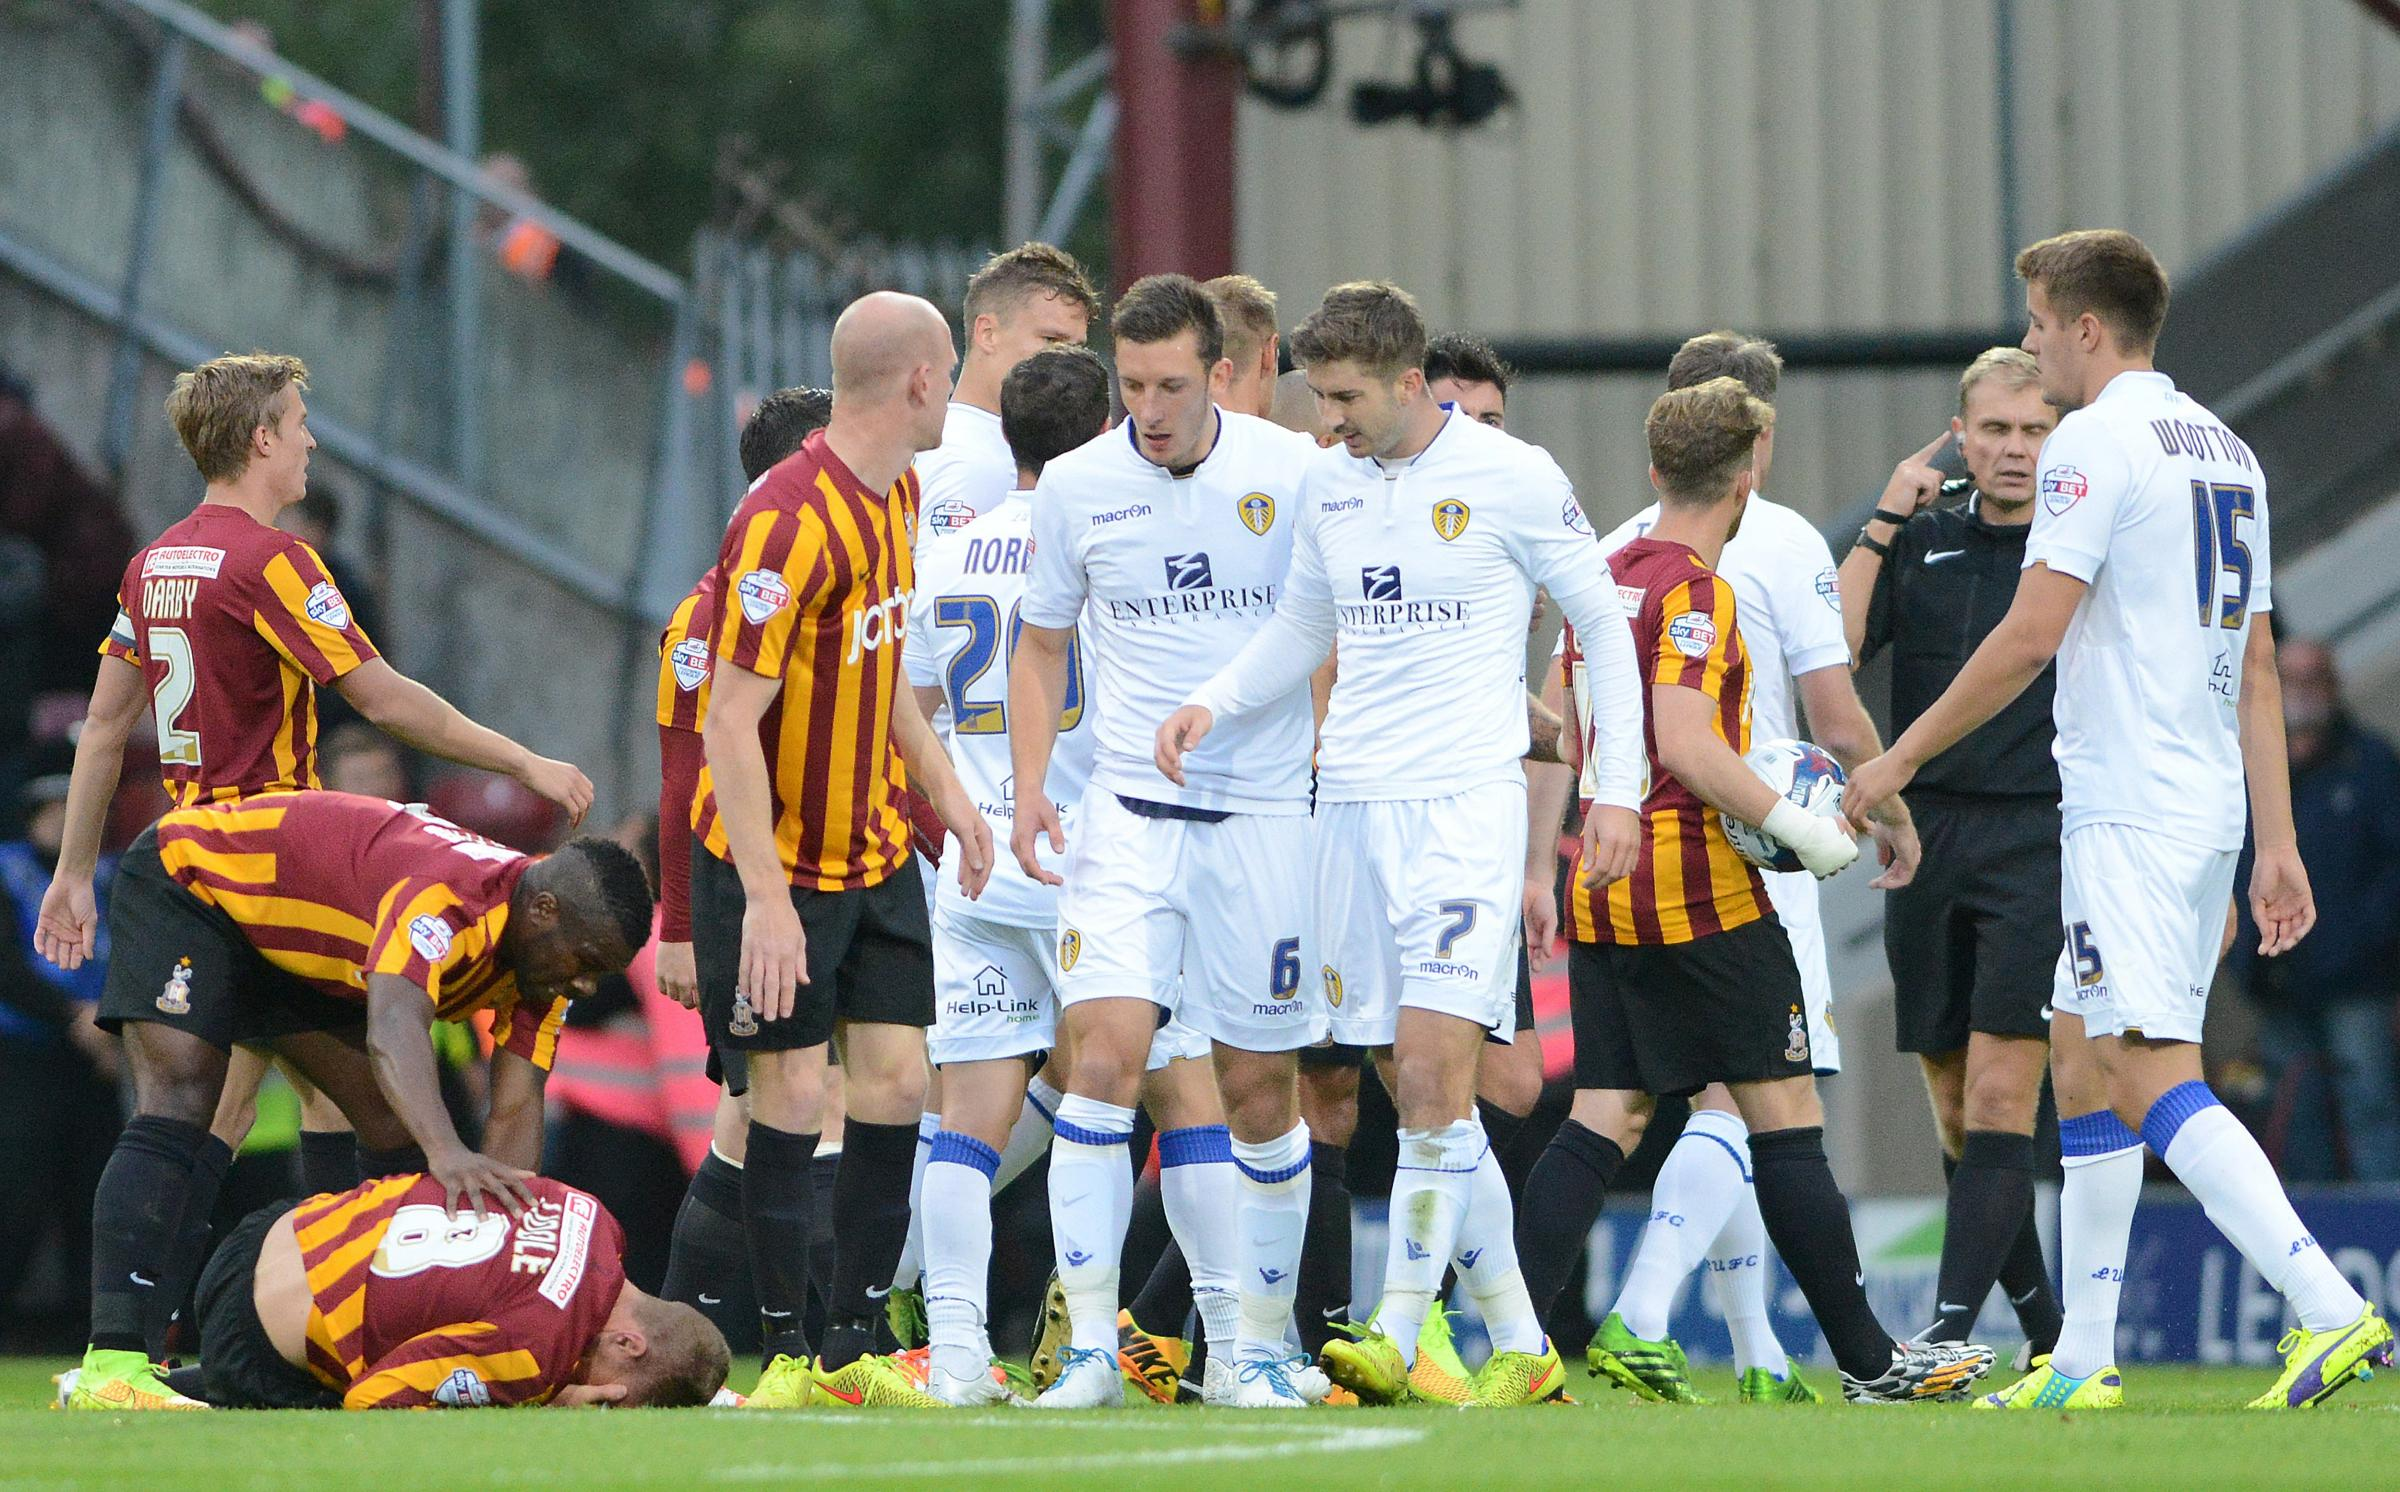 Bradford City told to forget Leeds and focus on Rochdale